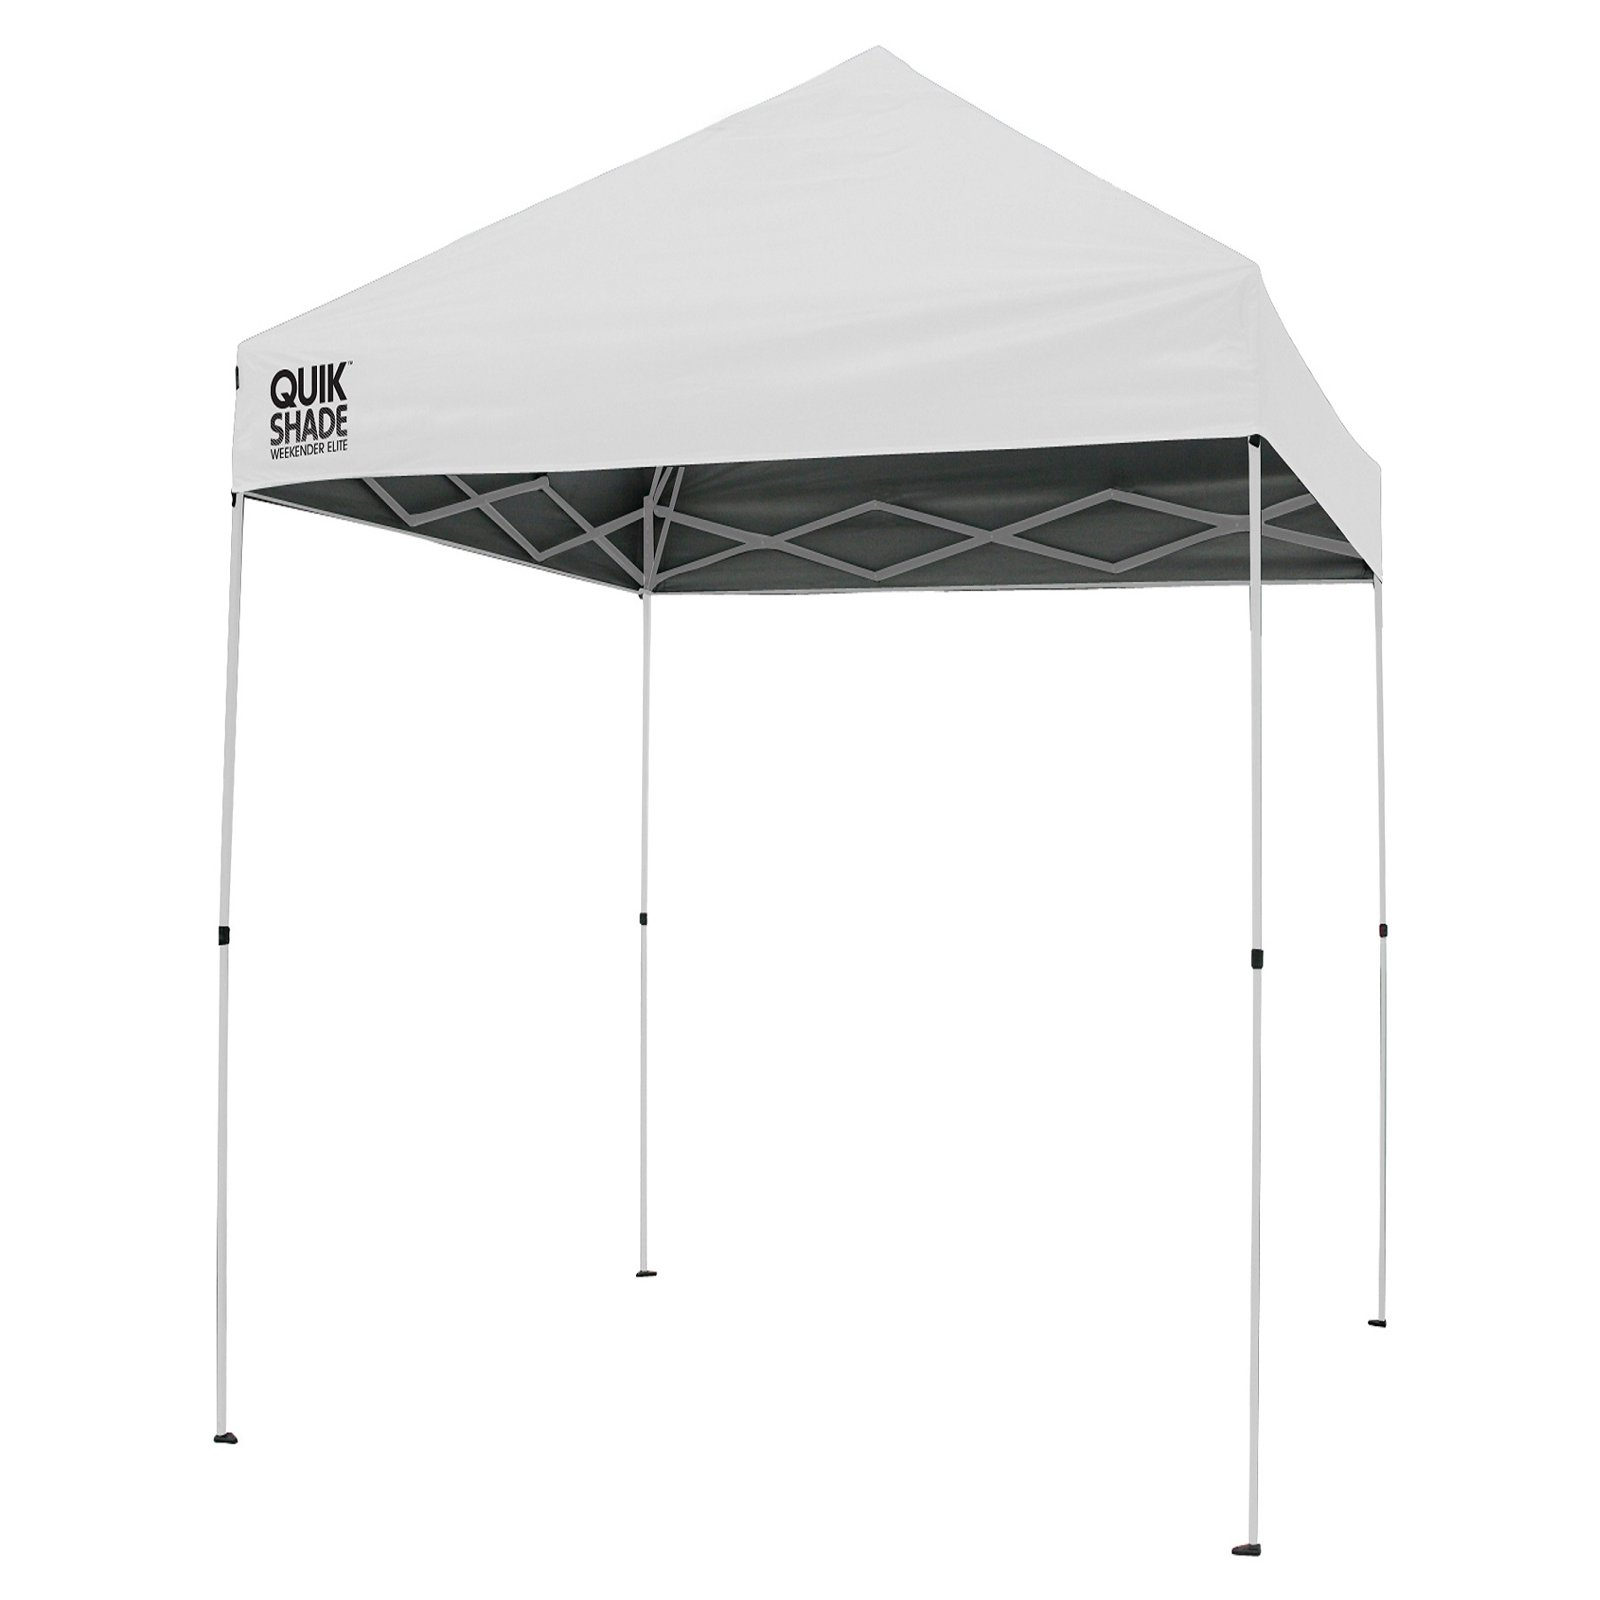 Quik Shade Weekender Elite 10'x10' Straight Leg Instant Canopy (100 sq. ft. coverage) by Bravo Sports